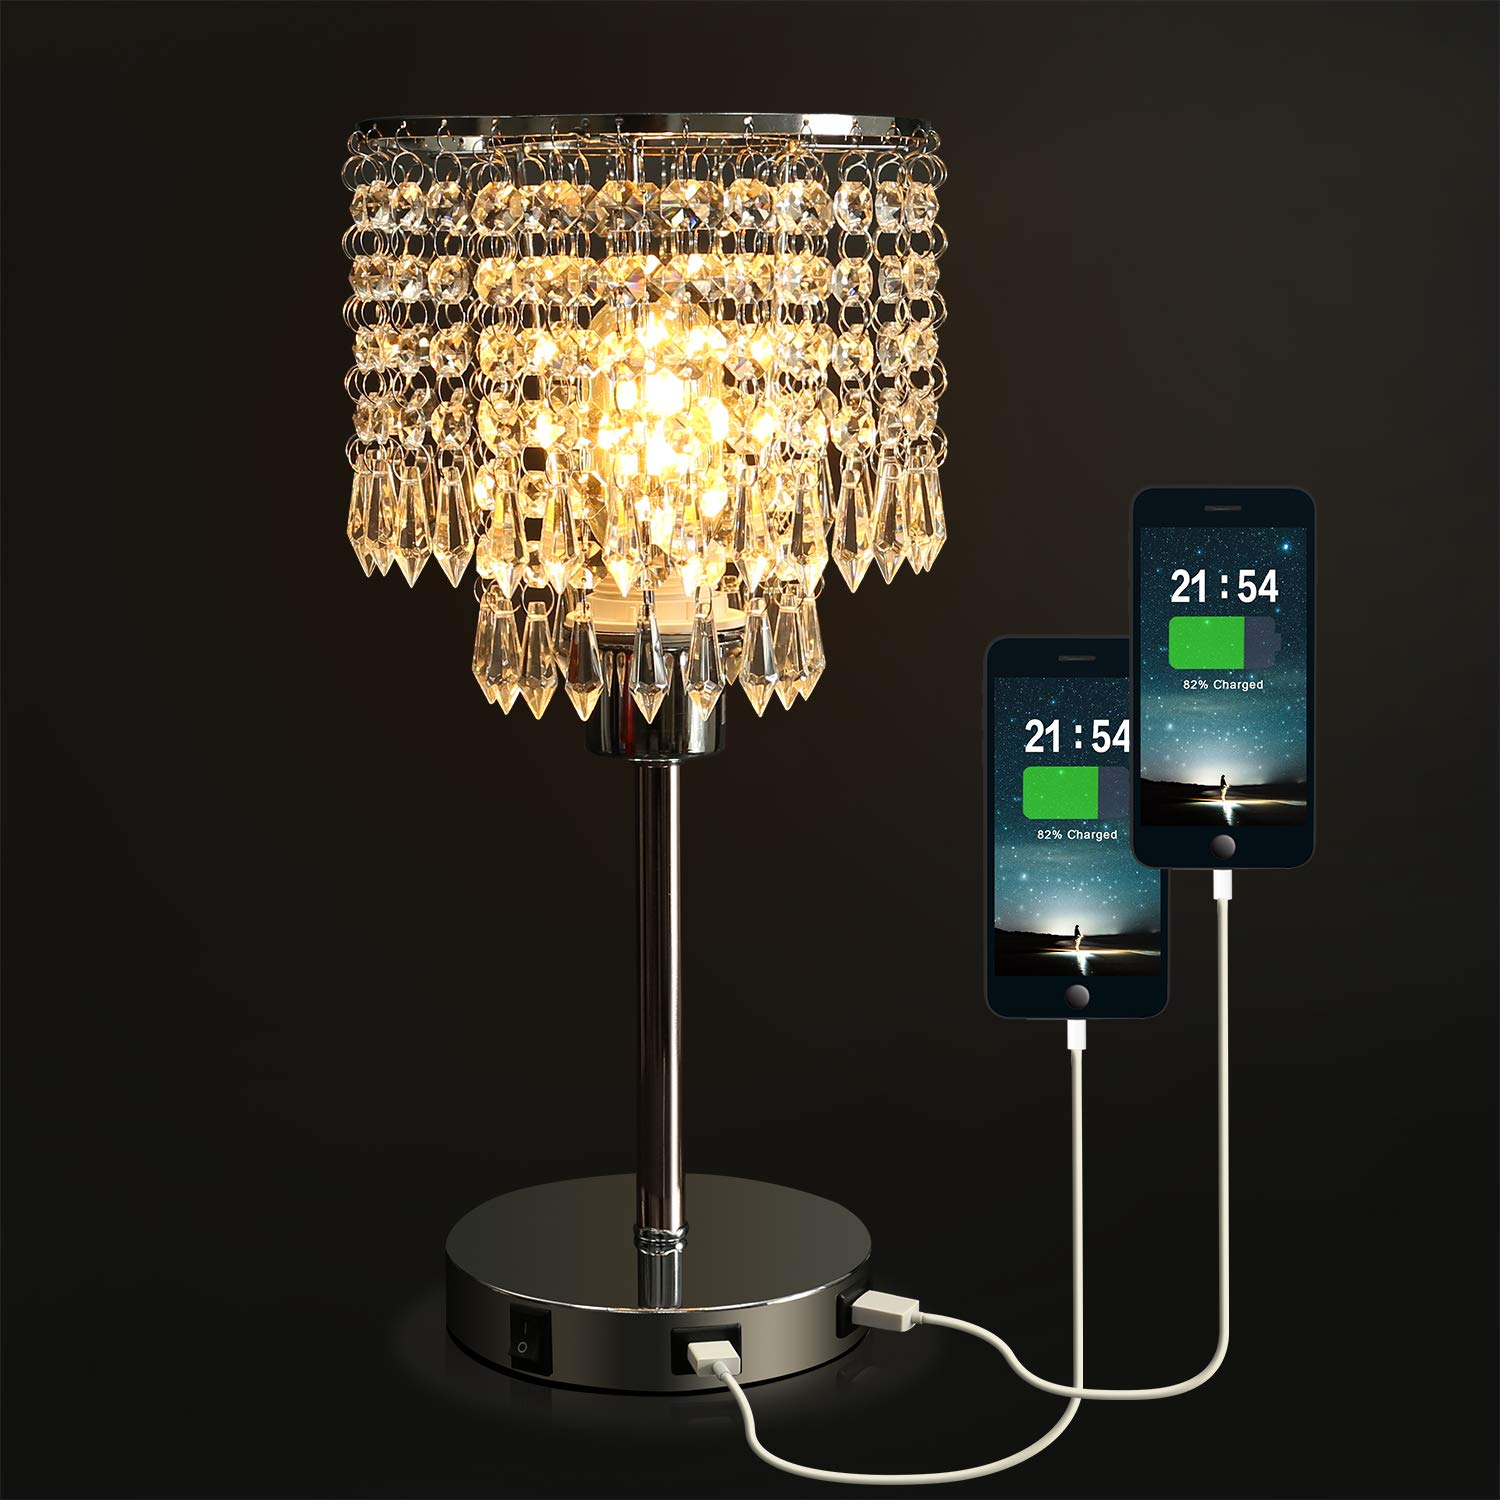 Crystal Bedside Table Lamp with Dual USB Charging Port, Acaxin Nightstand Lamp with Elegant Shade, Decorative Desk Lamp for Bedrooms/Living Room/Dining Room/Kitchen by Acaxin